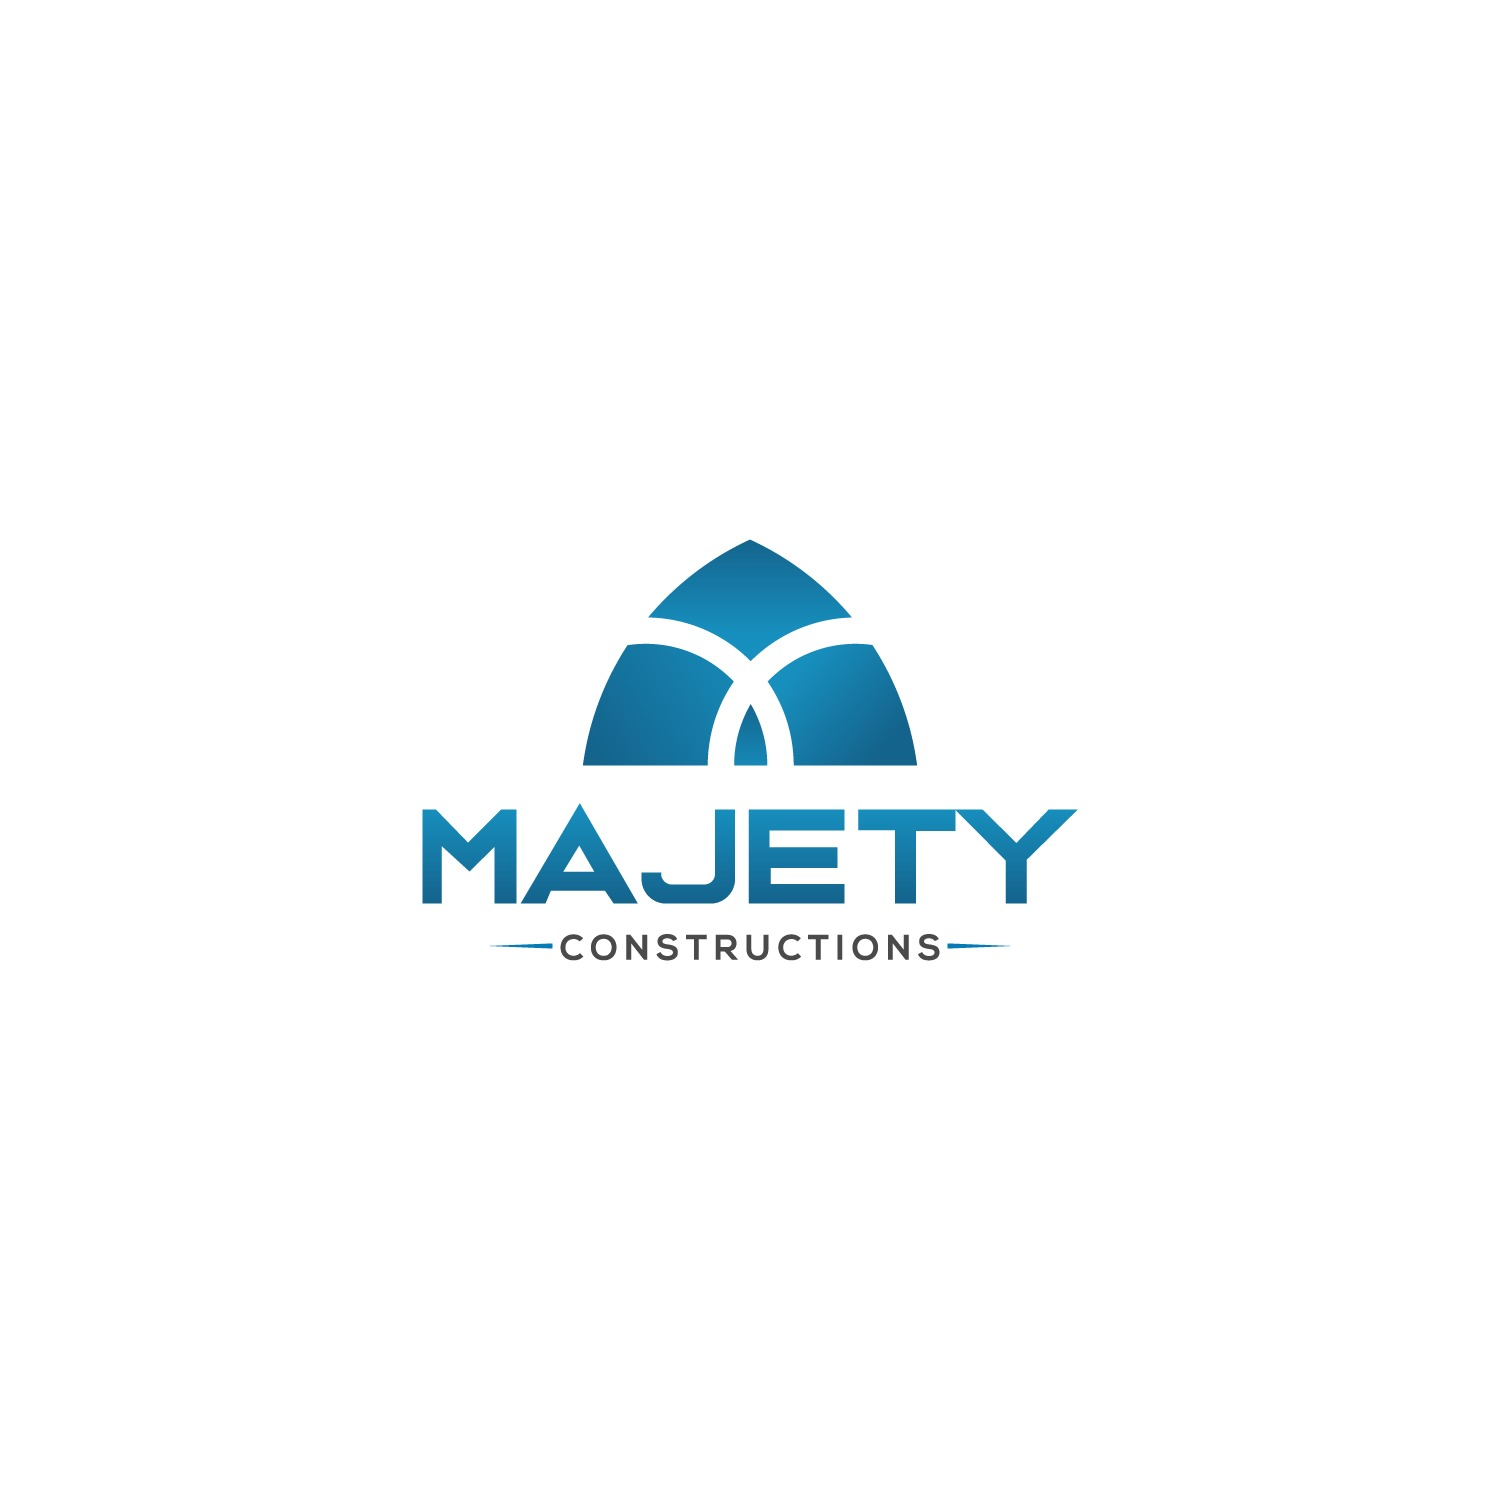 MAJETY CONSTRUCTIONS & PROPERTY MANAGEMENT SERVICES PVT LTD